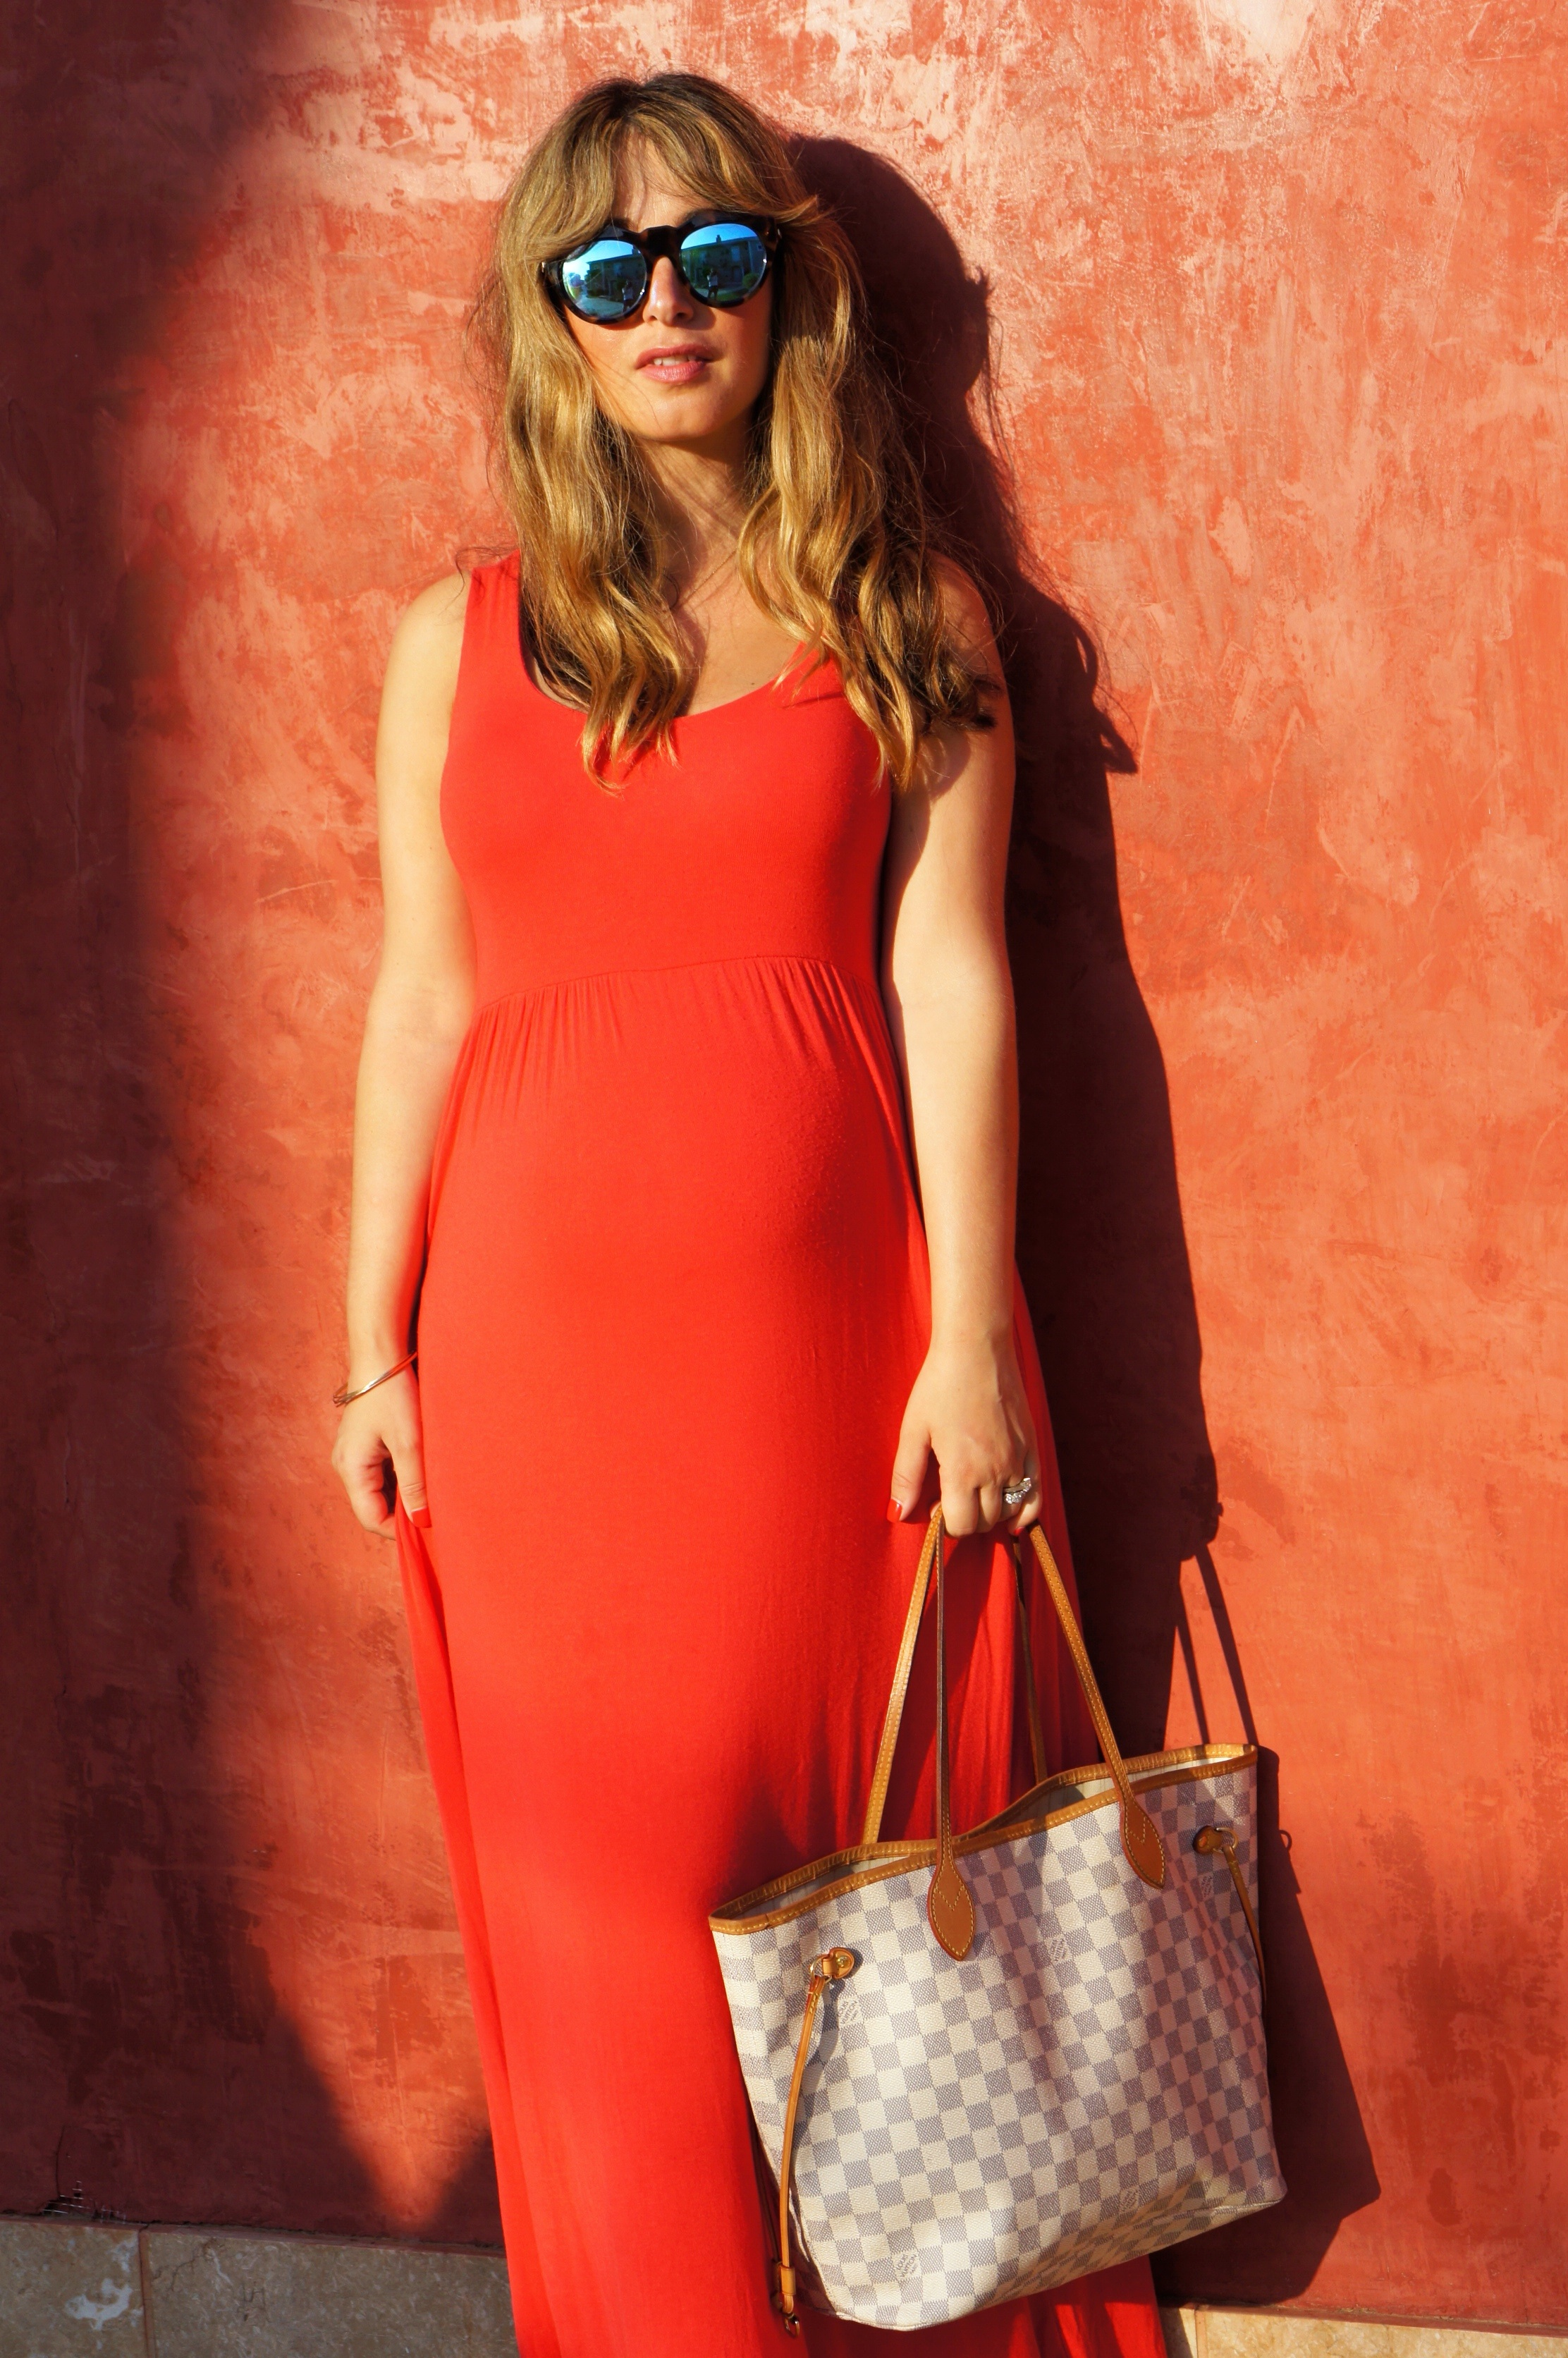 red maxi dress, maternity dress, louis vuitton bag, le specs sunglasses